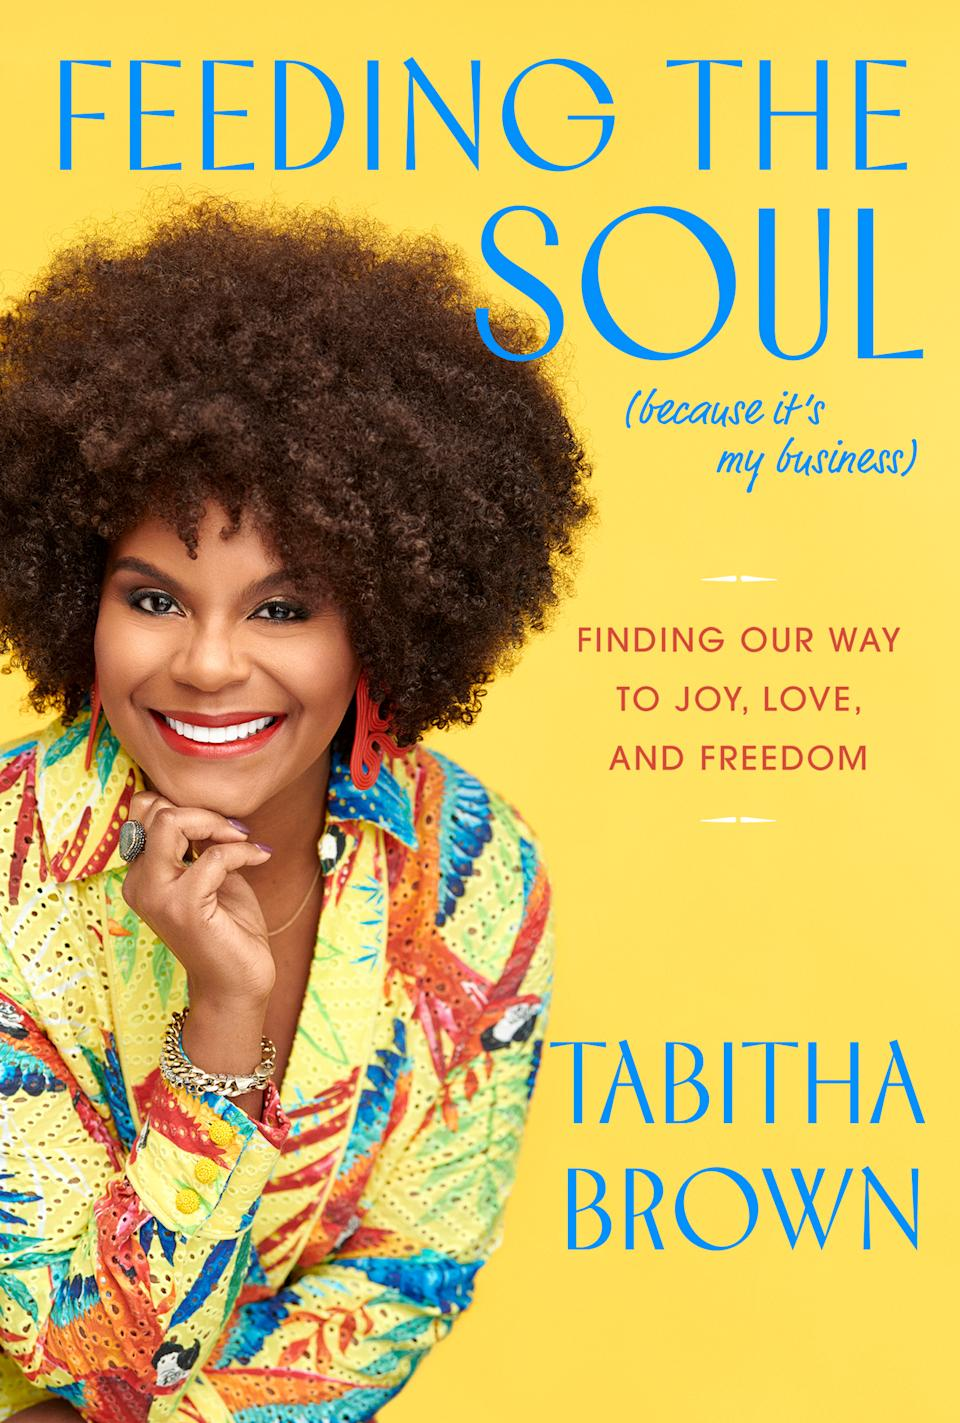 Brown's book Feeding the Soul (Because It's My Business) is out now. (Photo: Courtesy of Harper Collins)